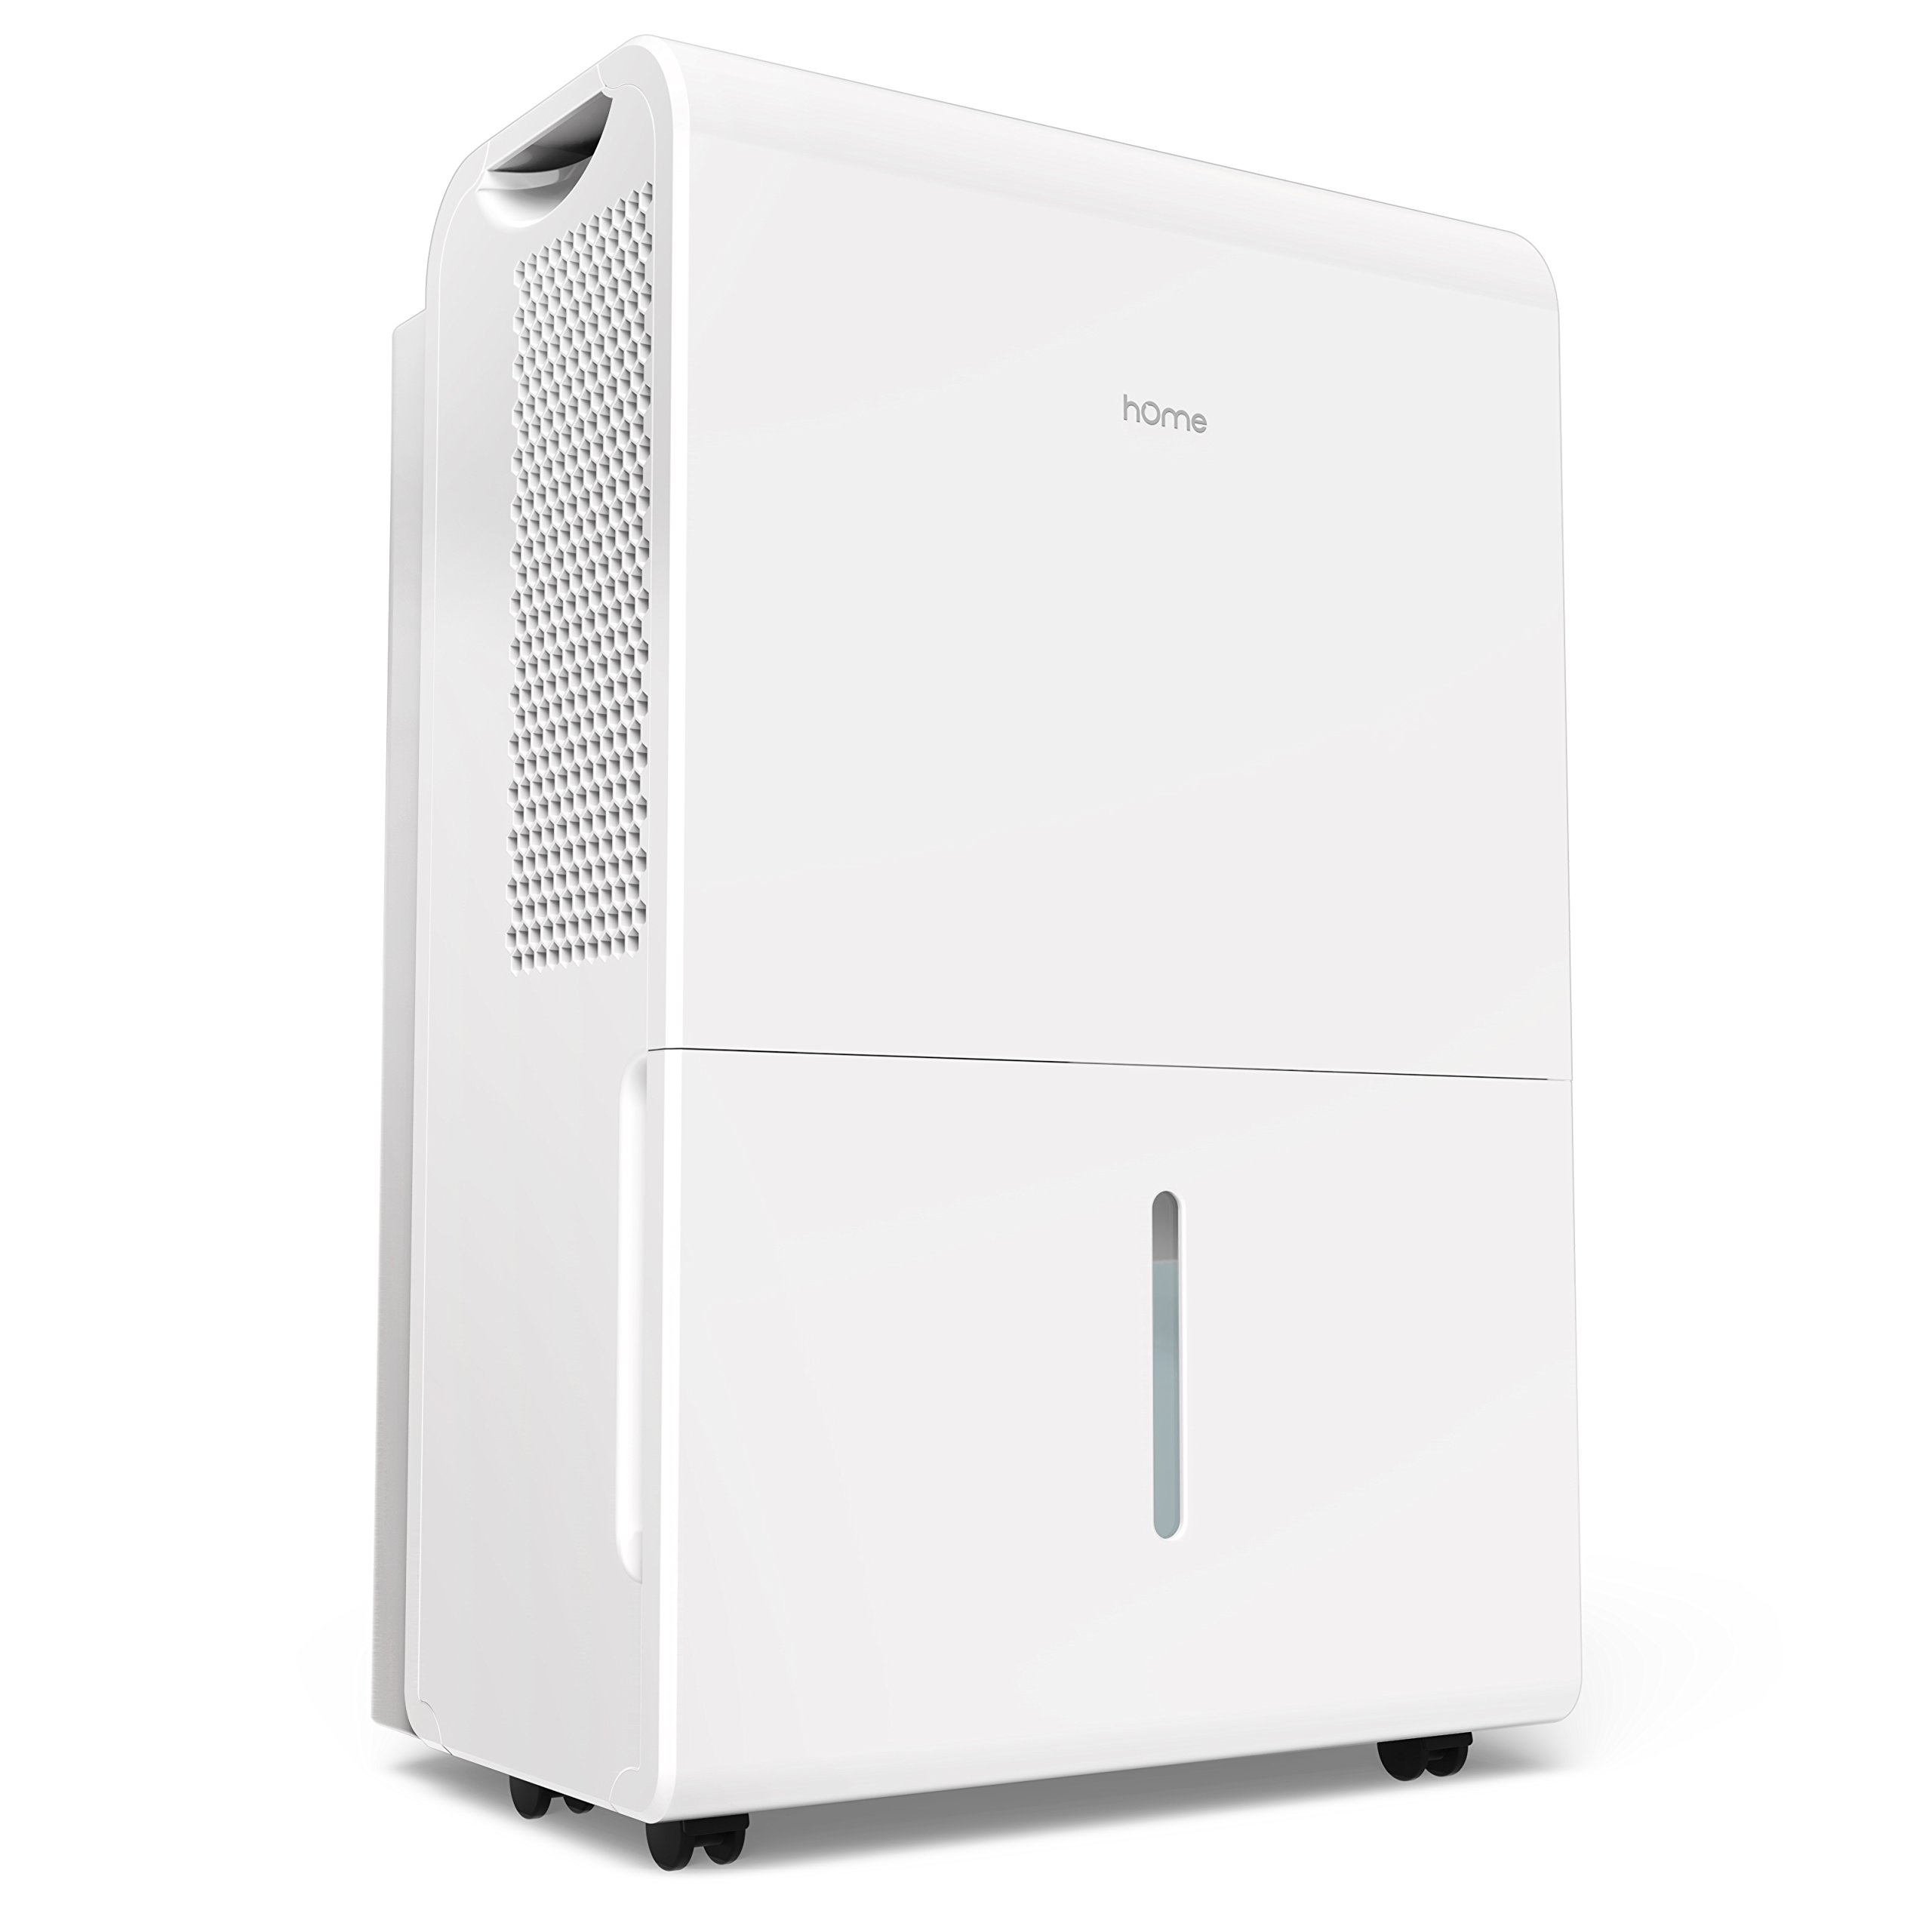 hOmeLabs 2500 Sq Ft Dehumidifier 50 Pint Energy Star Safe Mid Size Portable Dehumidifier for Basements & Large Rooms with Fan Wheels and Drain Hose Outlet to Remove Odor & Allergens